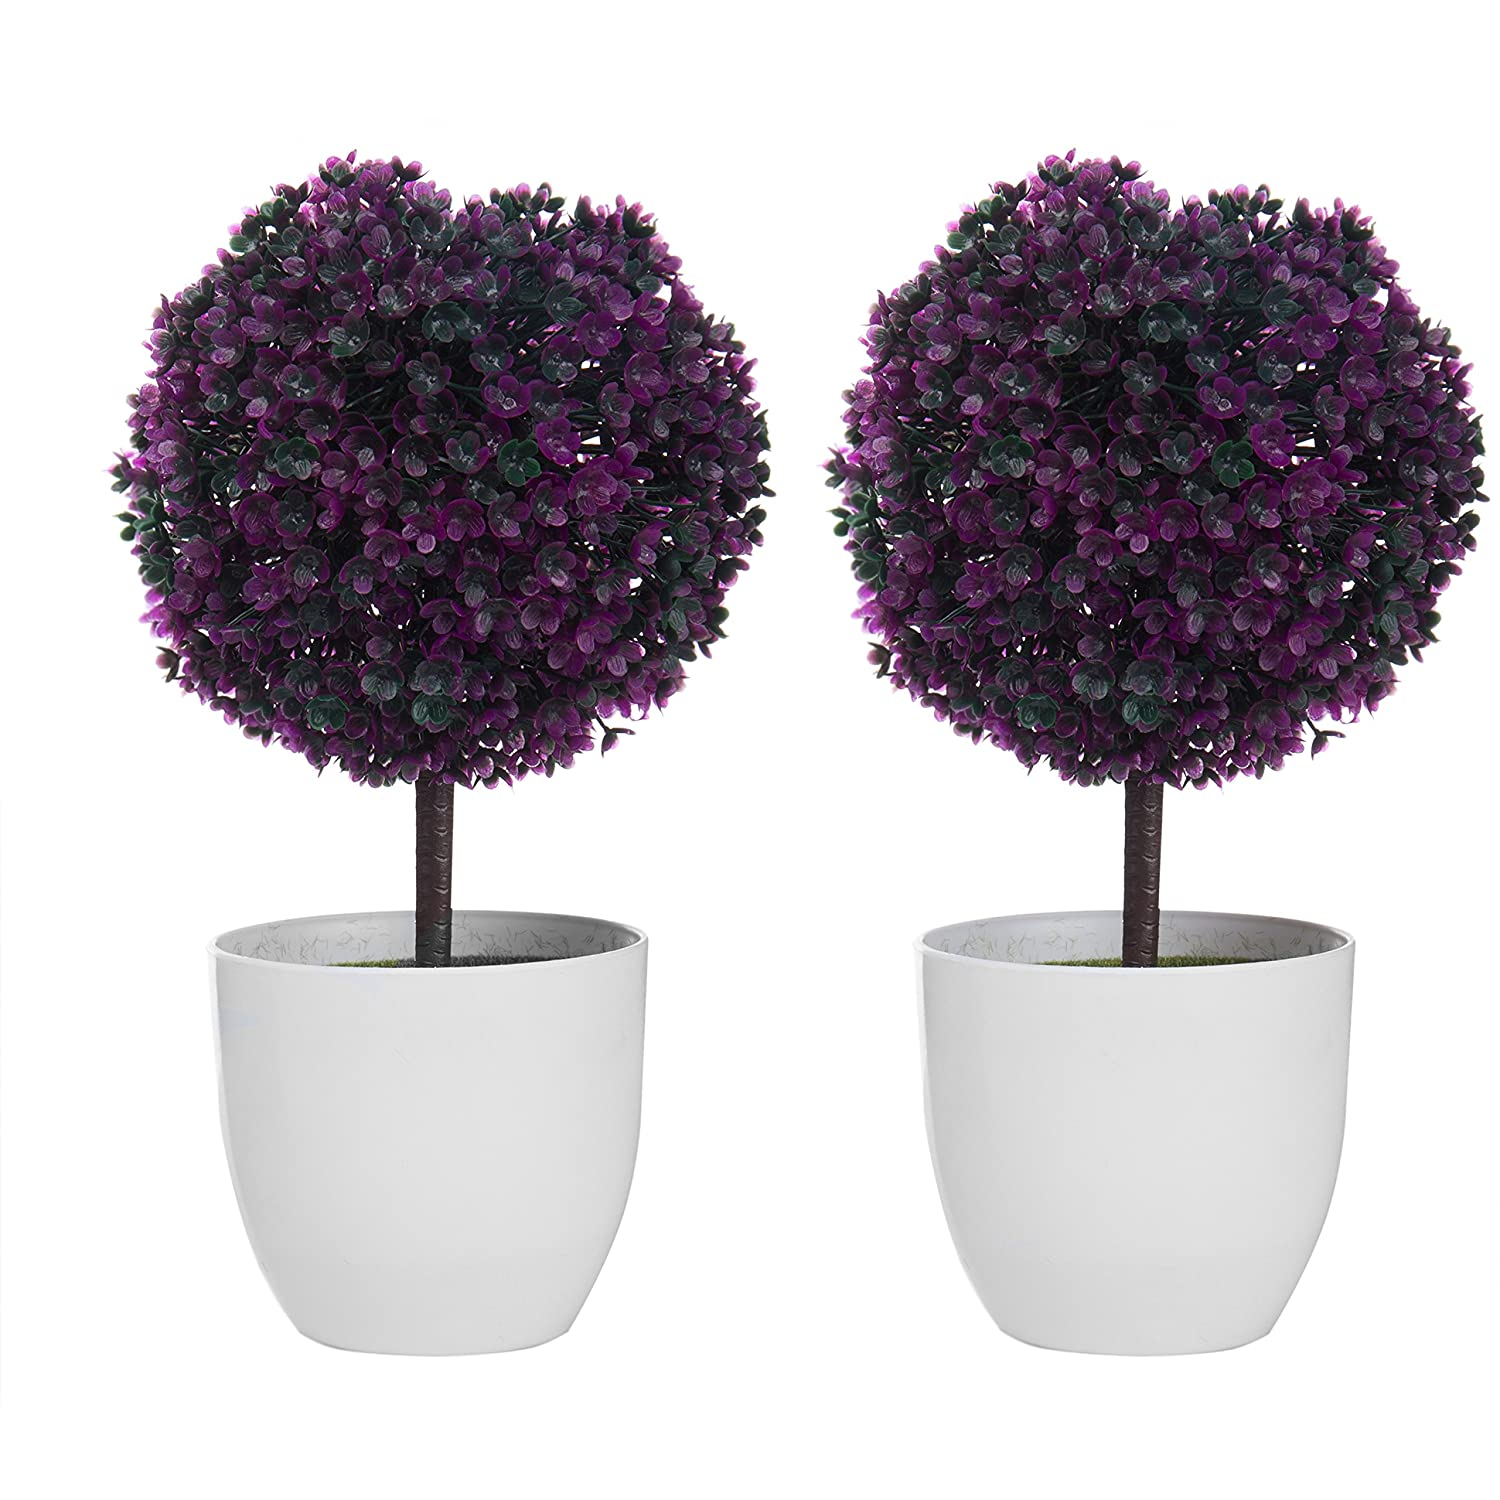 MyGift Set of 2 Artificial Faux Potted Tabletop Purple Flower Plant Topiary w/White Planter Pots Home